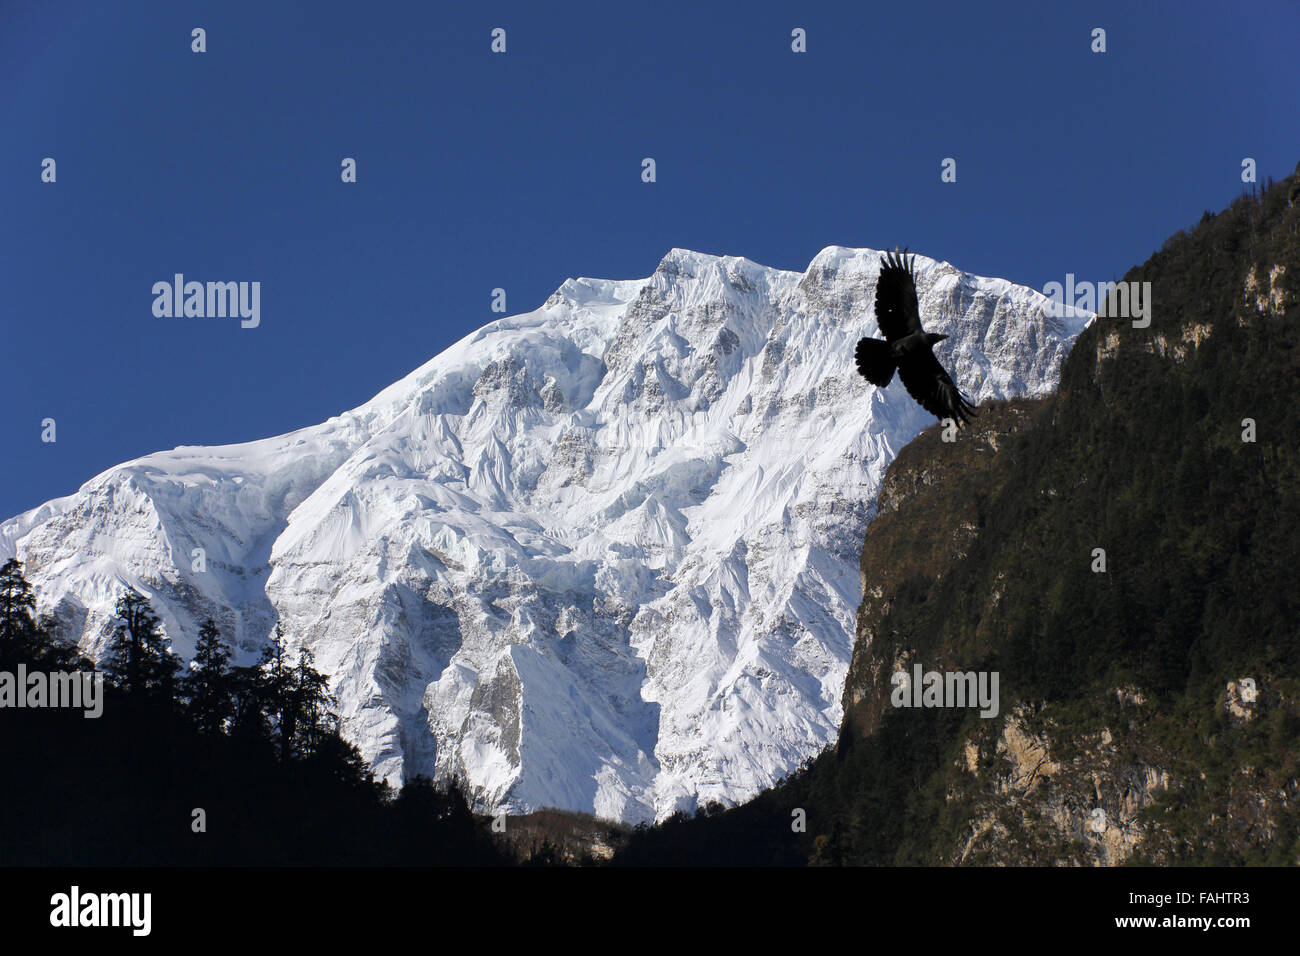 The Crow and Lamjung Himal - Stock Image